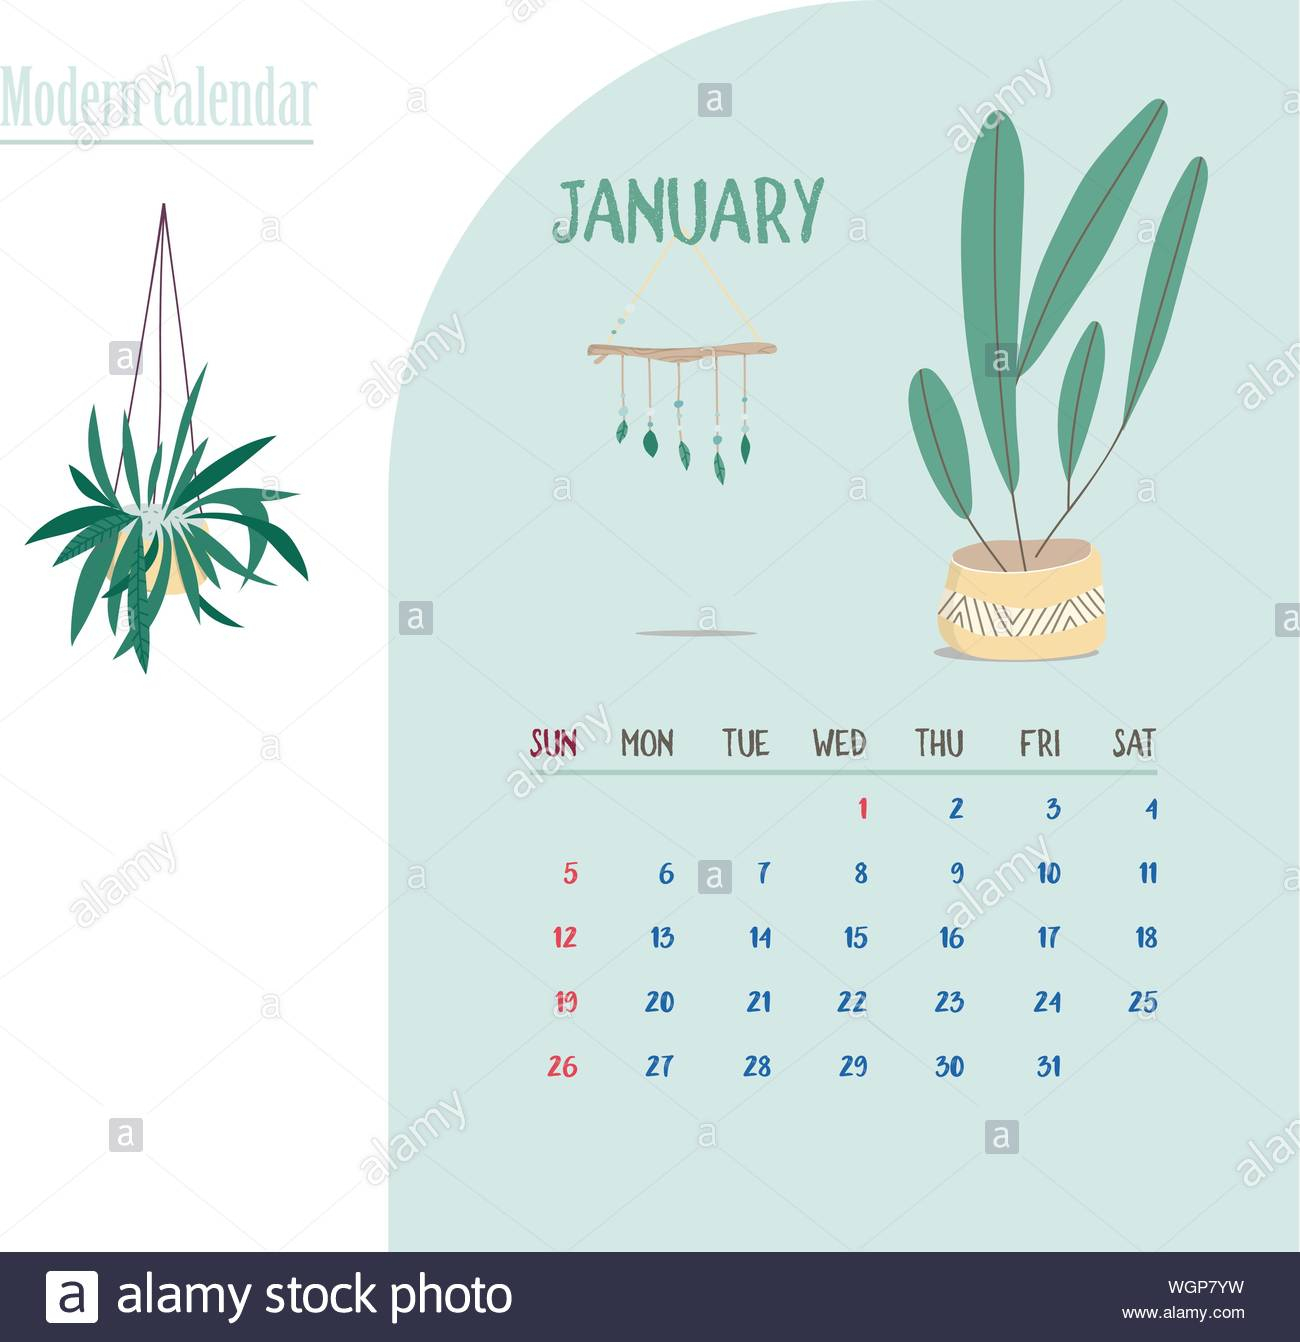 Printable Calendar Cut Out Stock Images & Pictures - Alamy